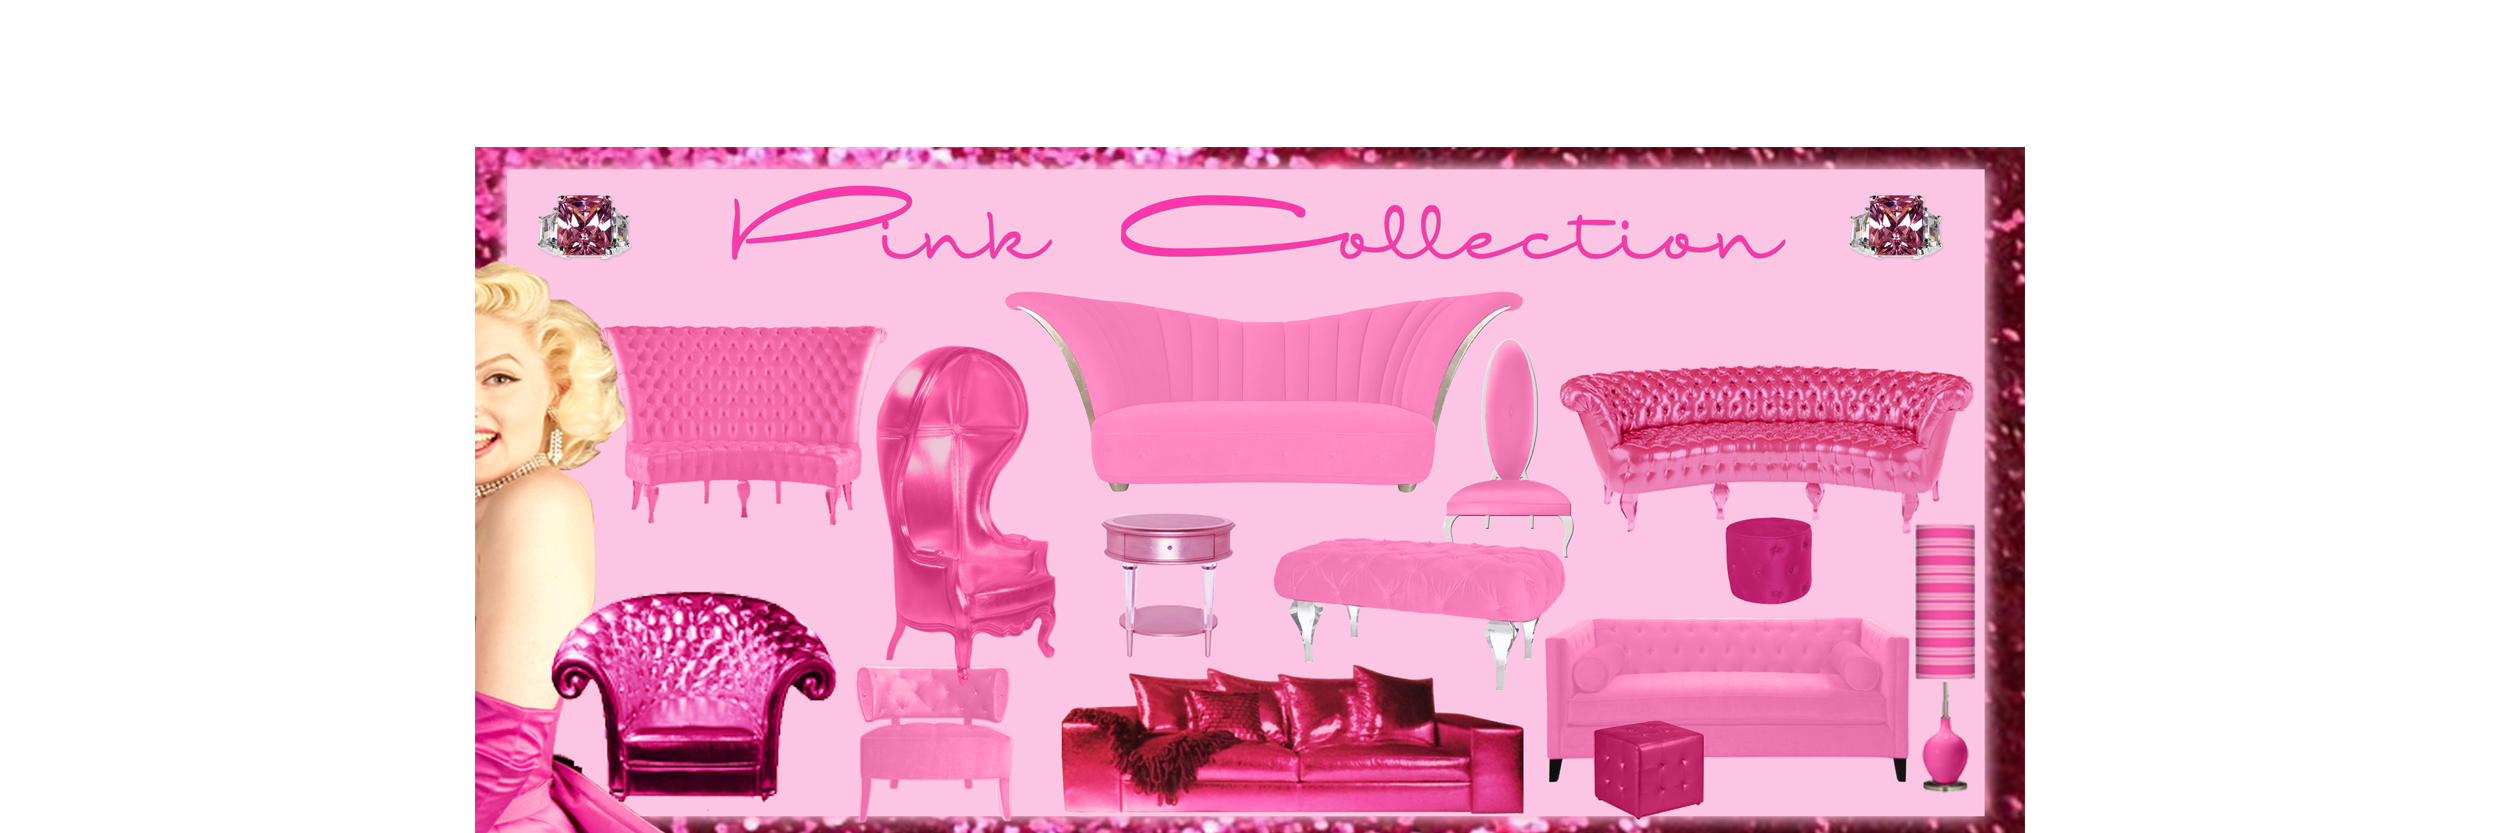 2-REVISED-PINK-COLLECITON-WEB-BANNER